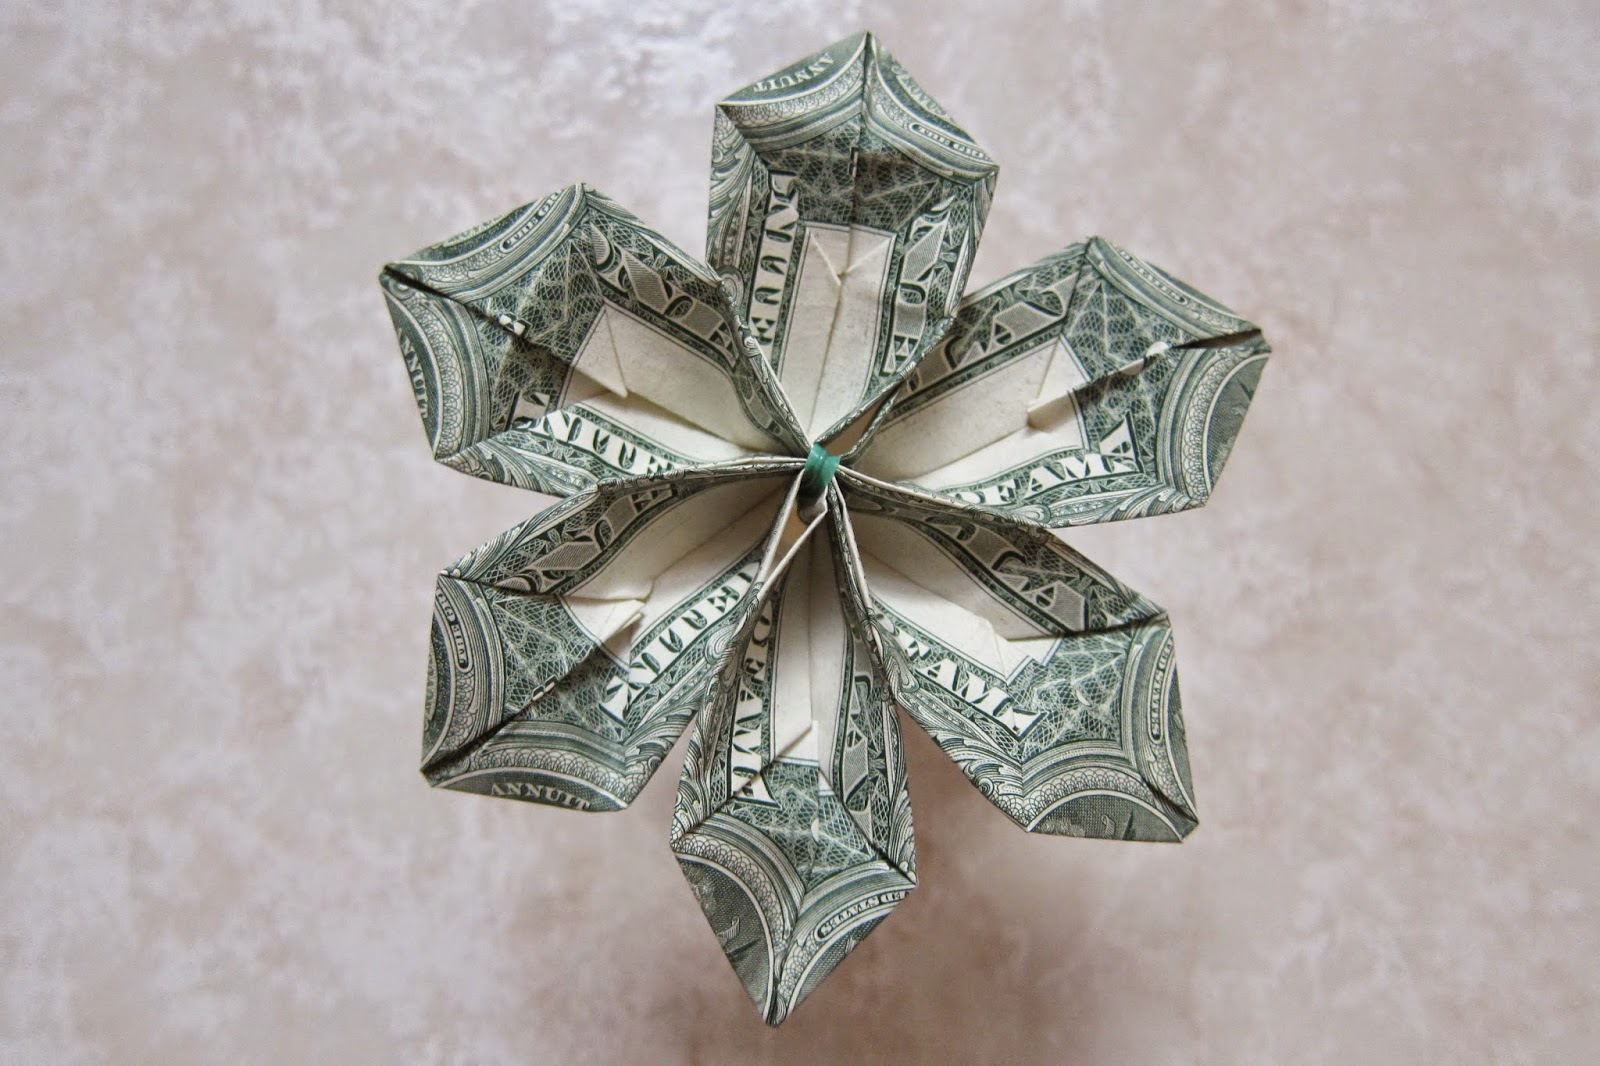 Origami money flower craft ideas and art projects origami money flower mightylinksfo